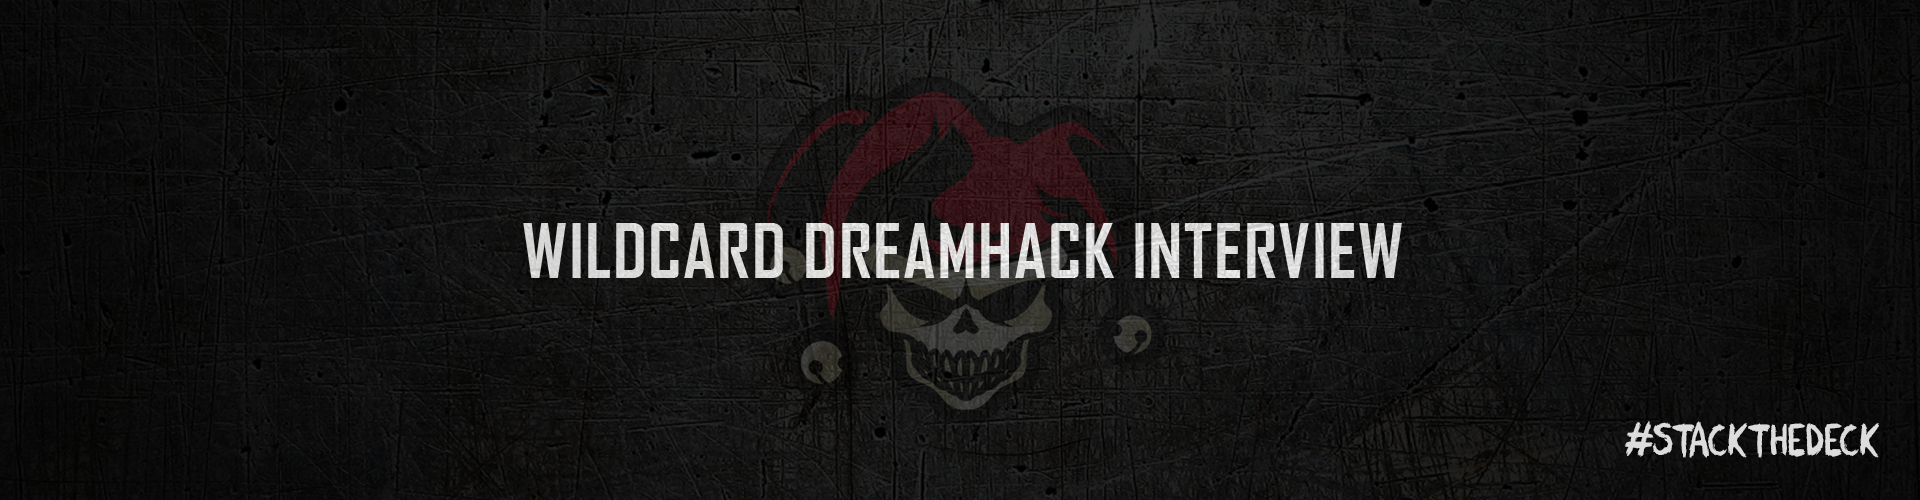 Wildcard Dreamhack Interview!